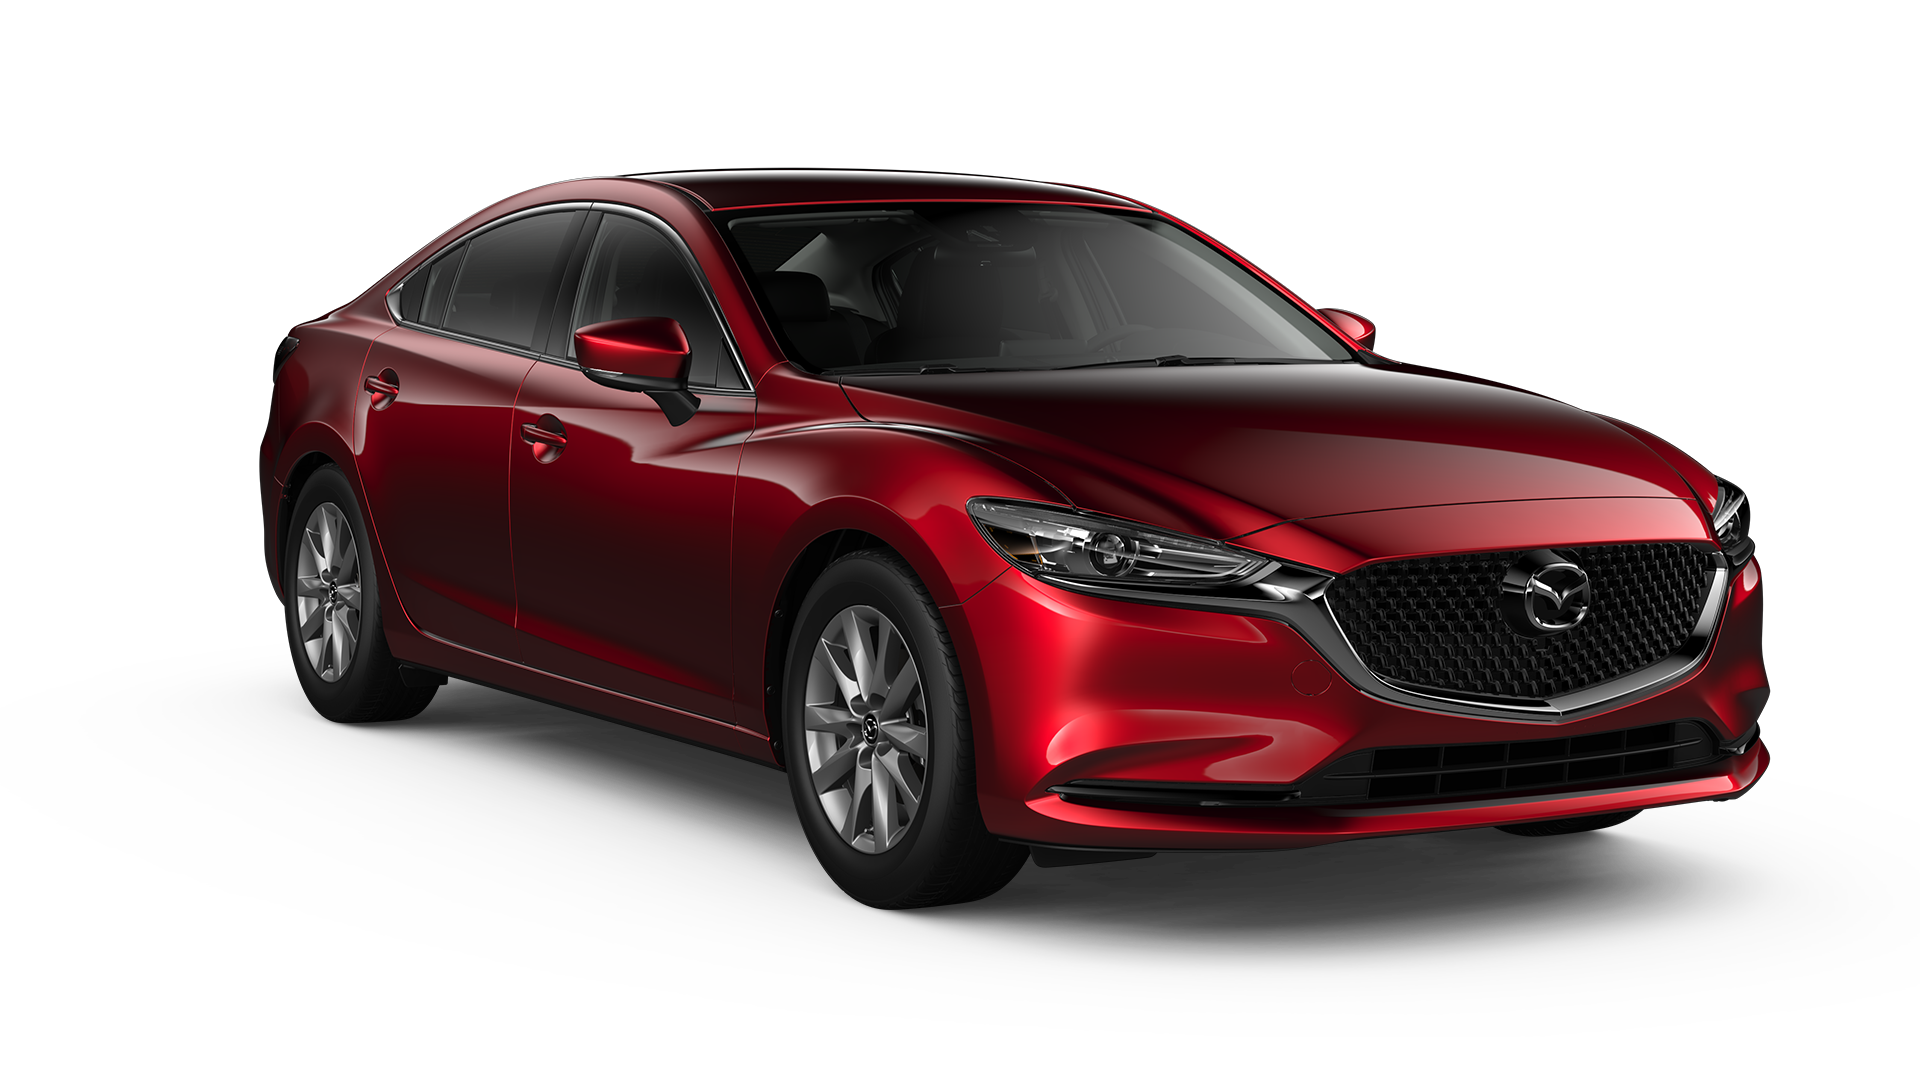 2018 mazda6 mid size sedan mazda canada. Black Bedroom Furniture Sets. Home Design Ideas